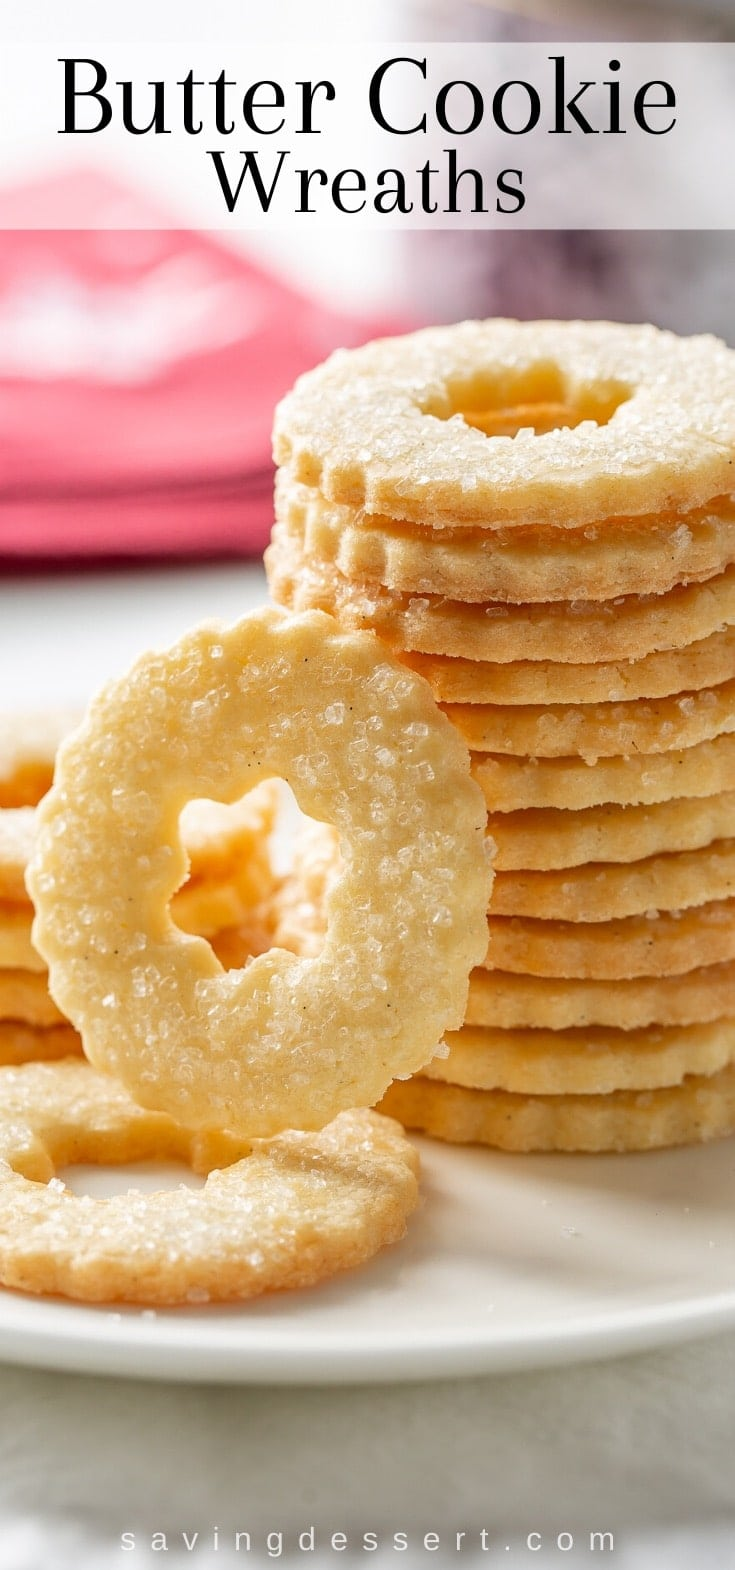 A stack of butter cookie wreaths